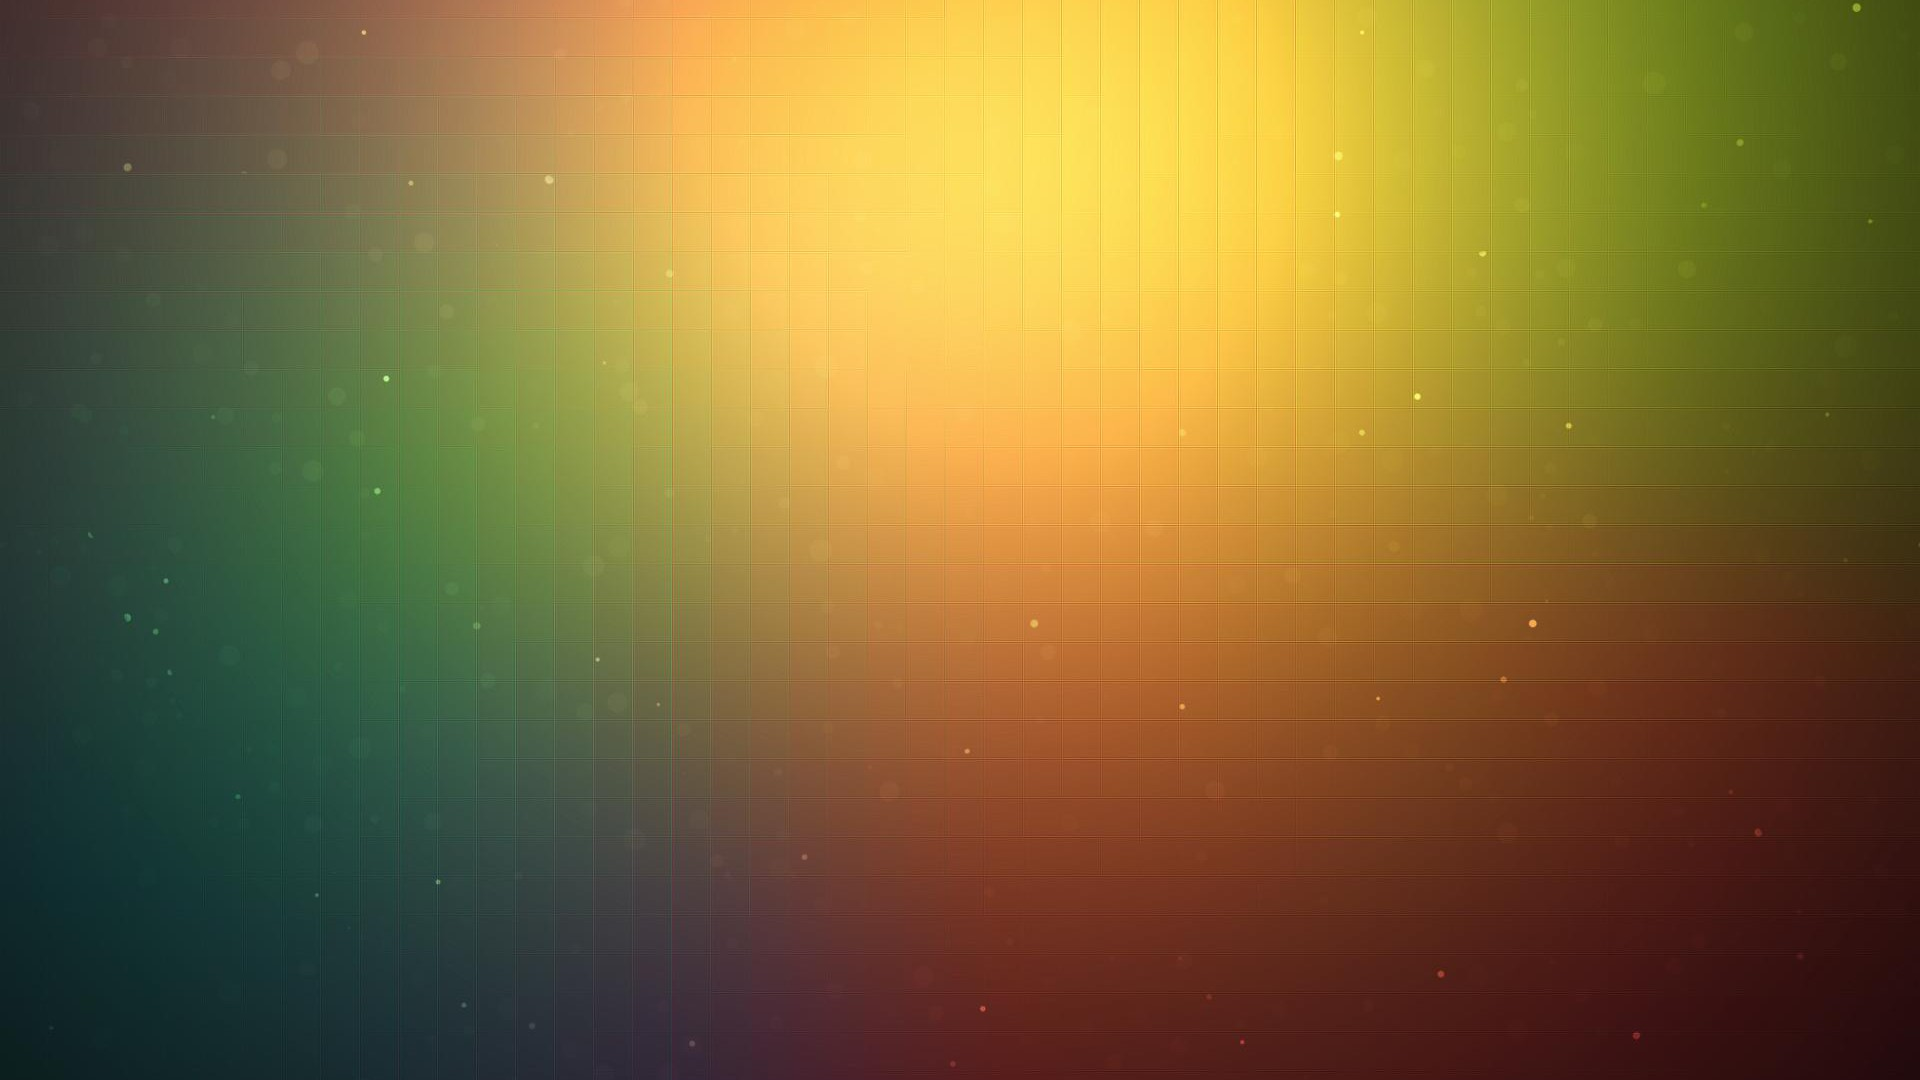 Simple Backgrounds